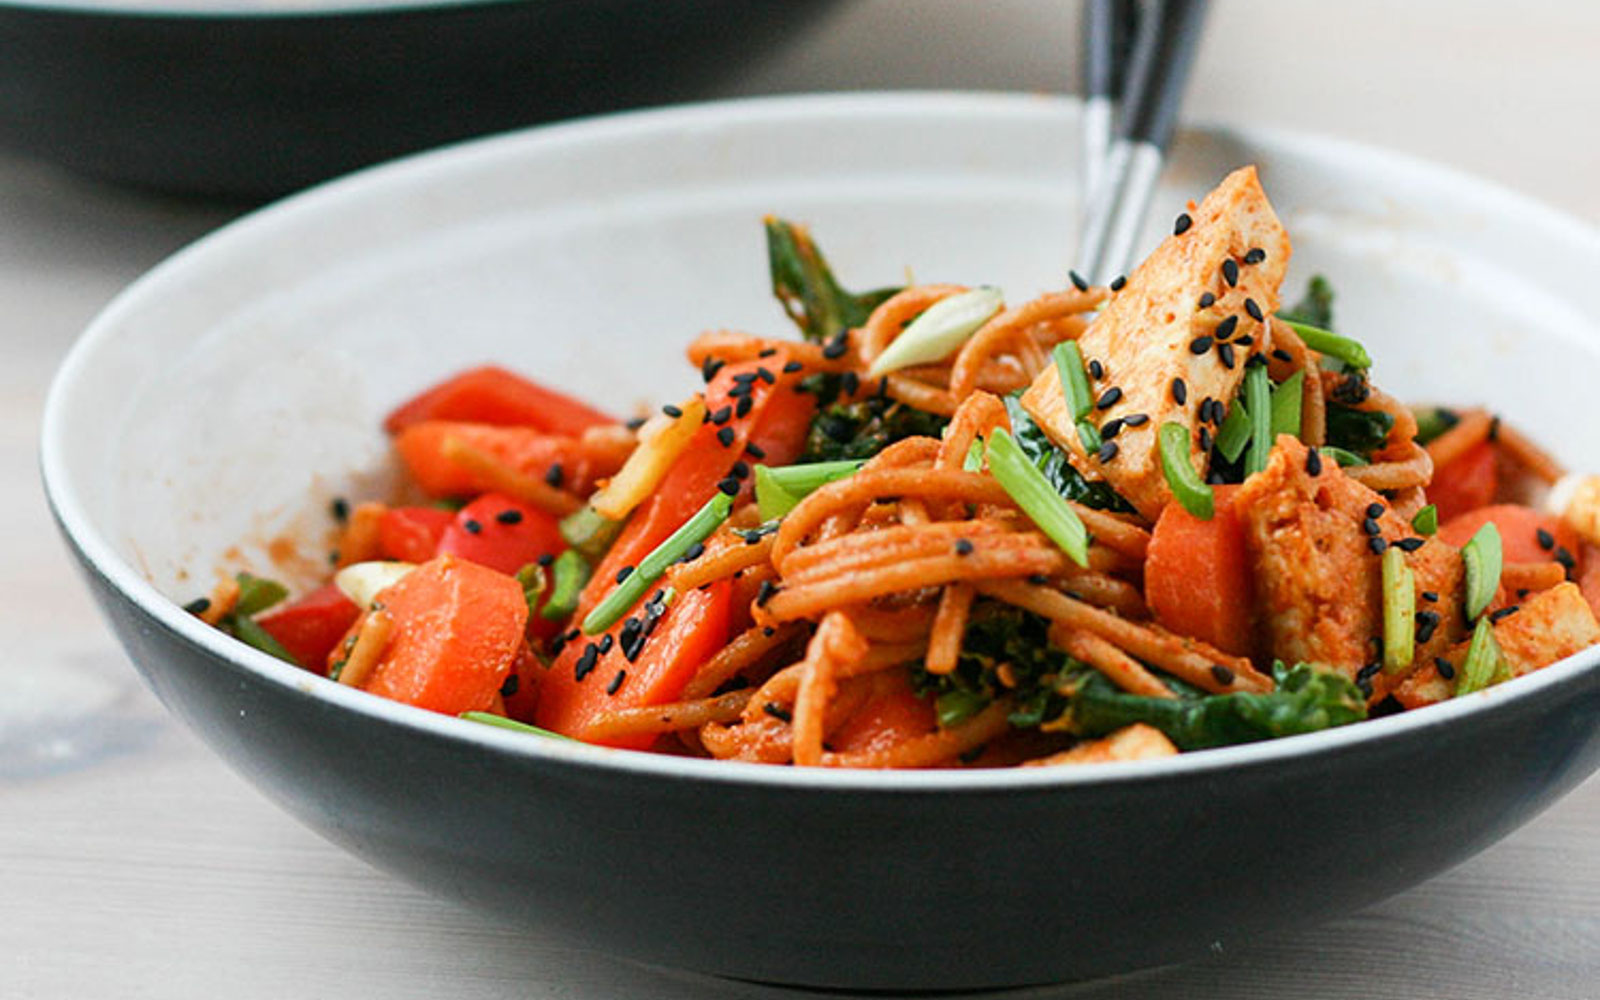 Korean Peanut Noodles With Vegetables and Tofu